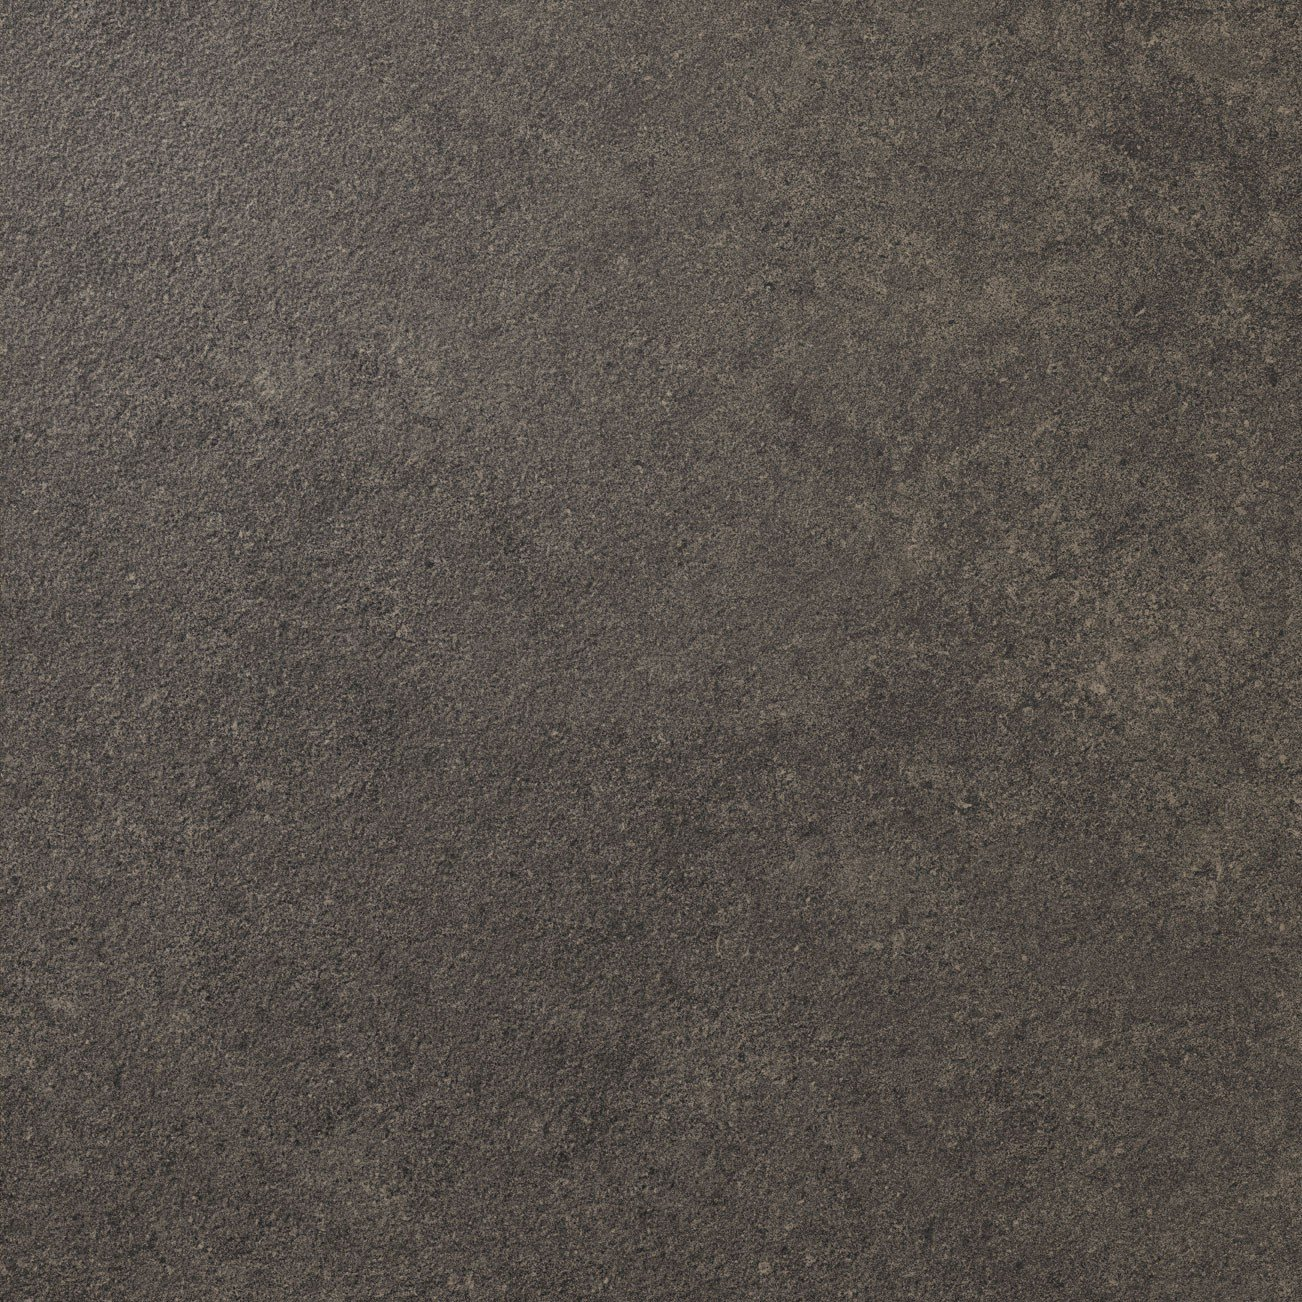 Porcelain stoneware wall floor tiles berna by inalco for 100x100 floor tiles